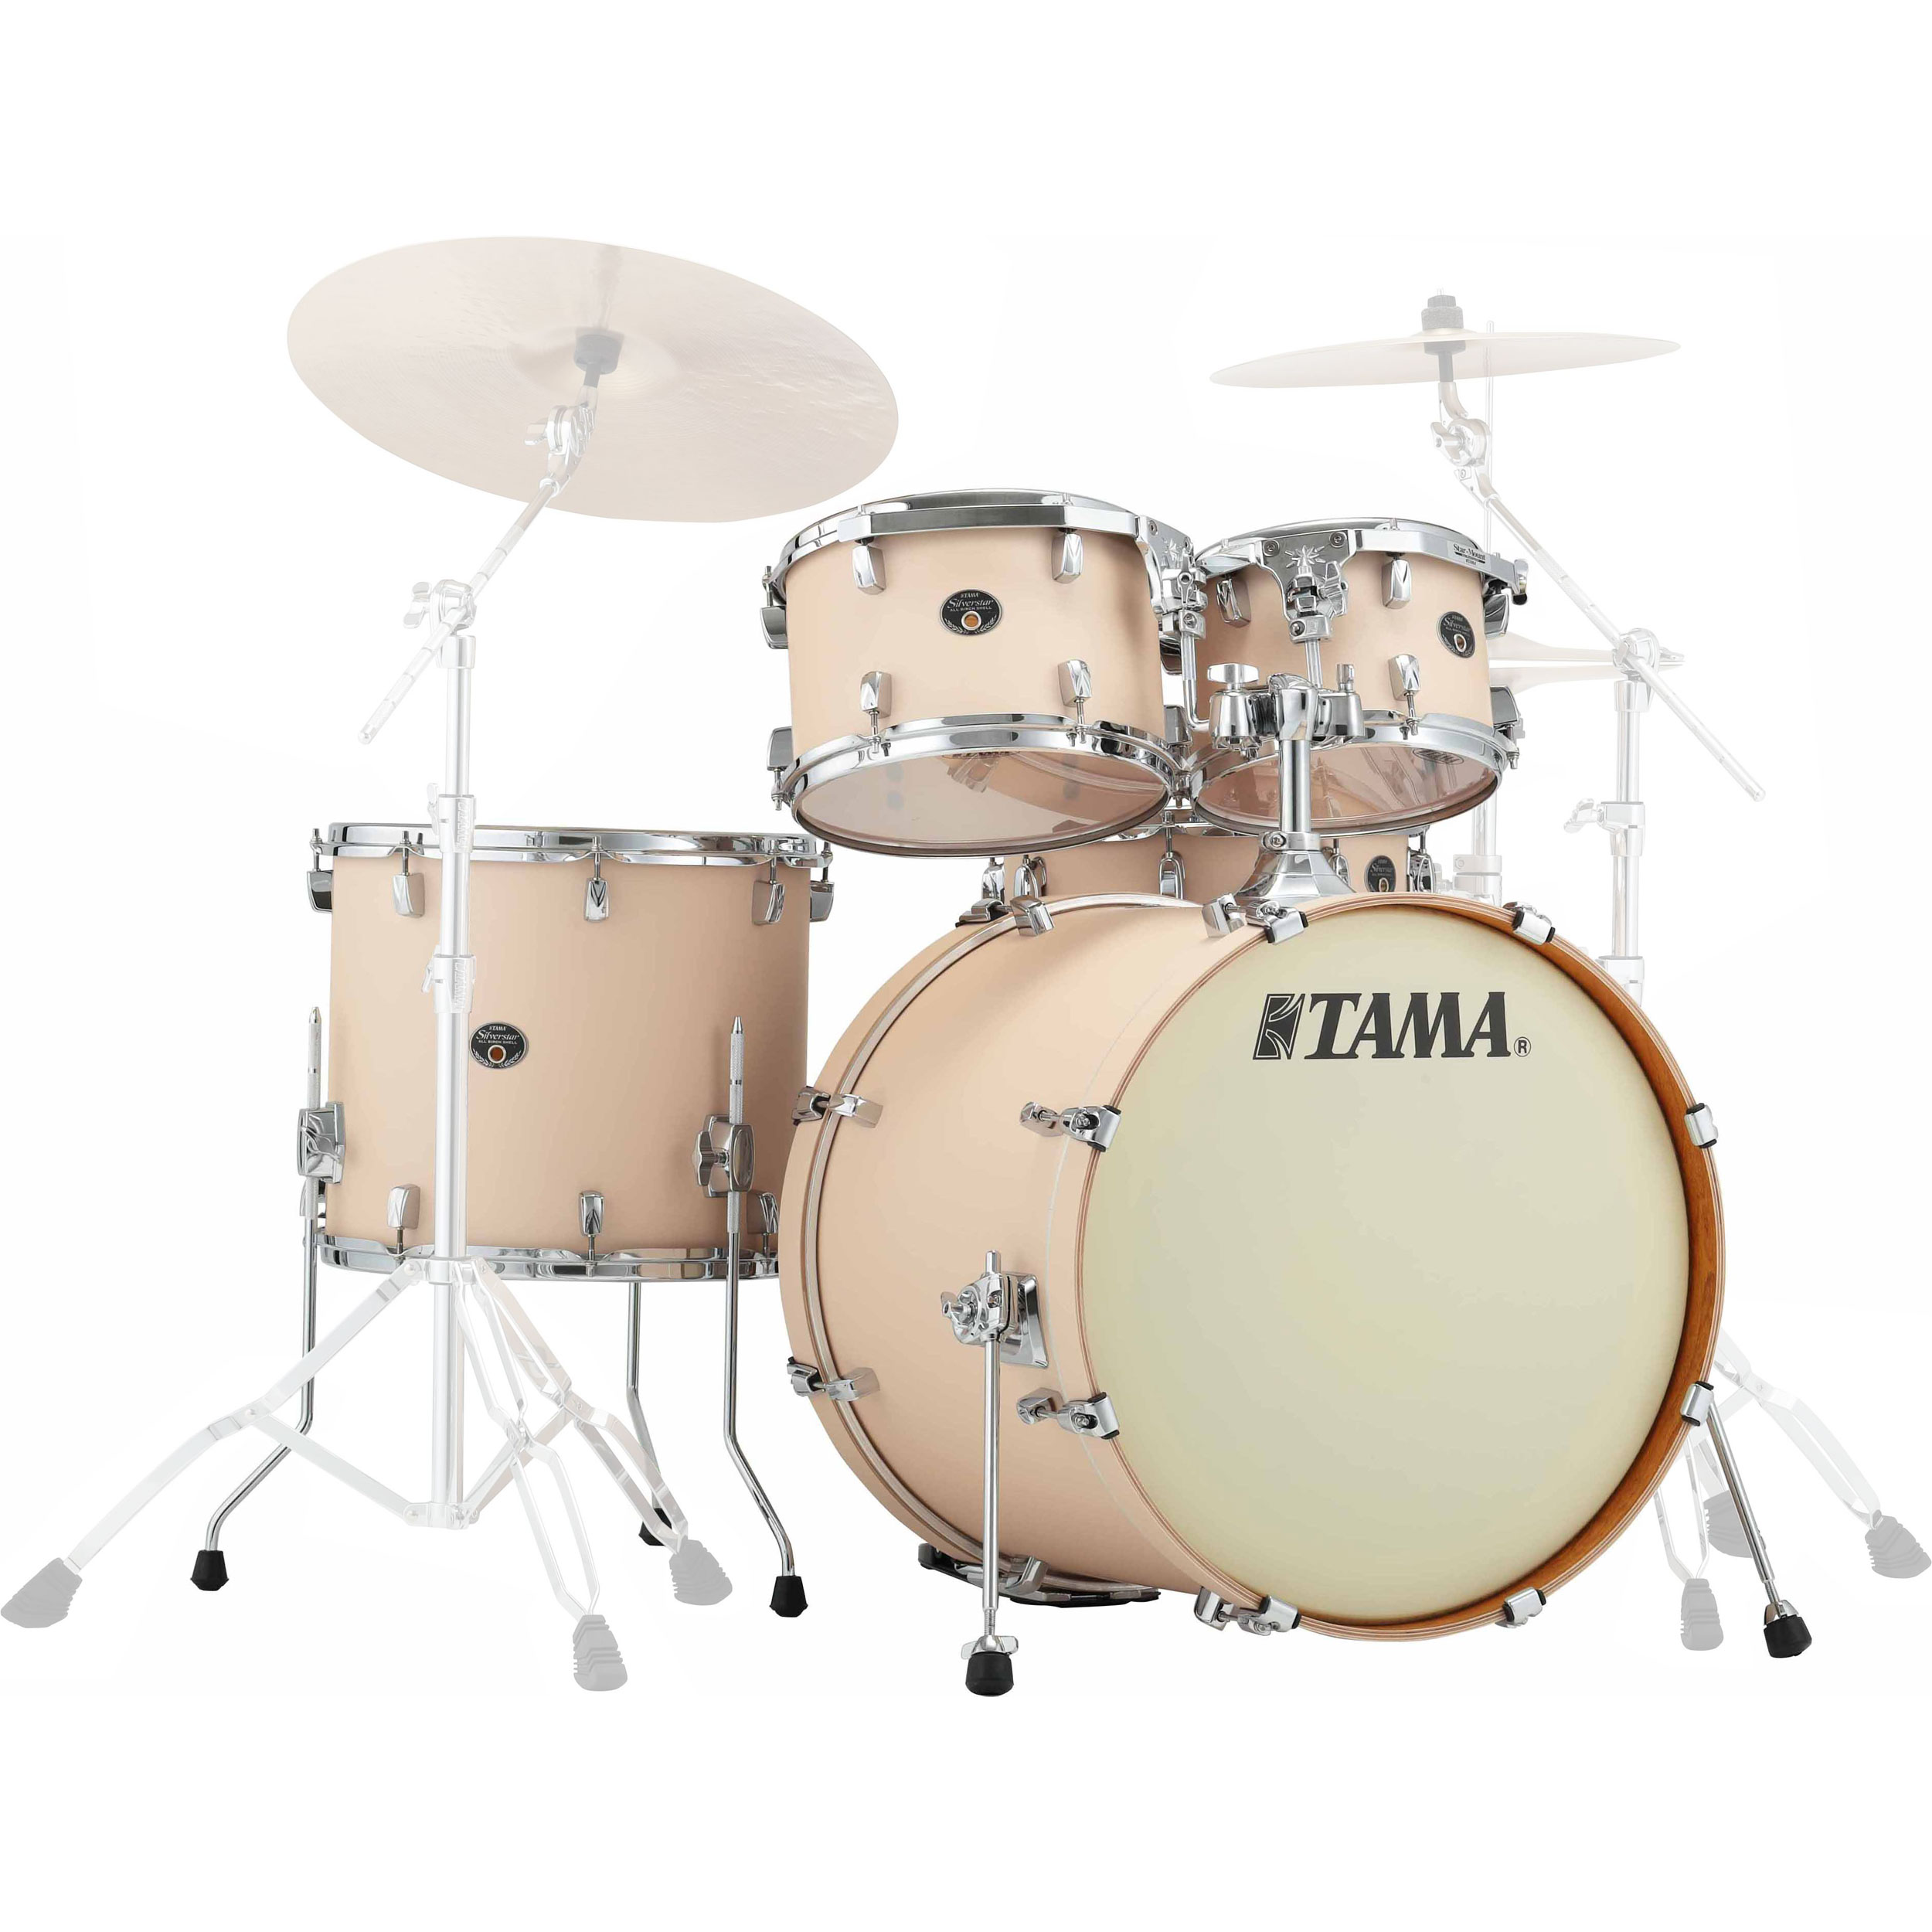 "Tama Silverstar 5-Piece Drum Set Shell Pack (22"" Bass, 10/12/16"" Toms, 14"" Snare) in Wrap Finish"